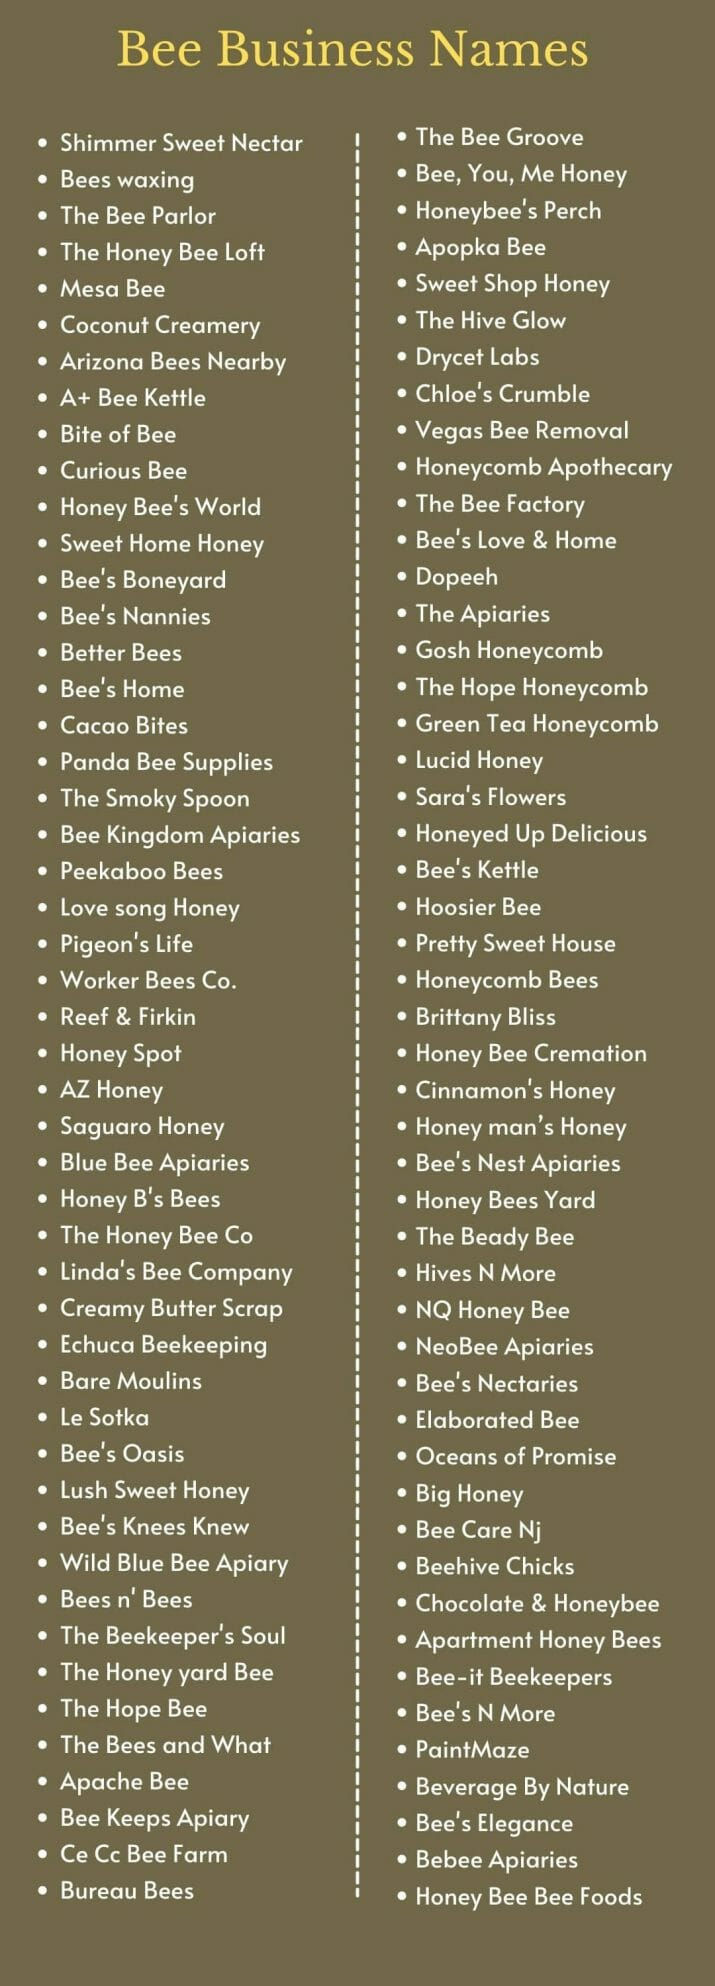 Bee Business Names: Infographic